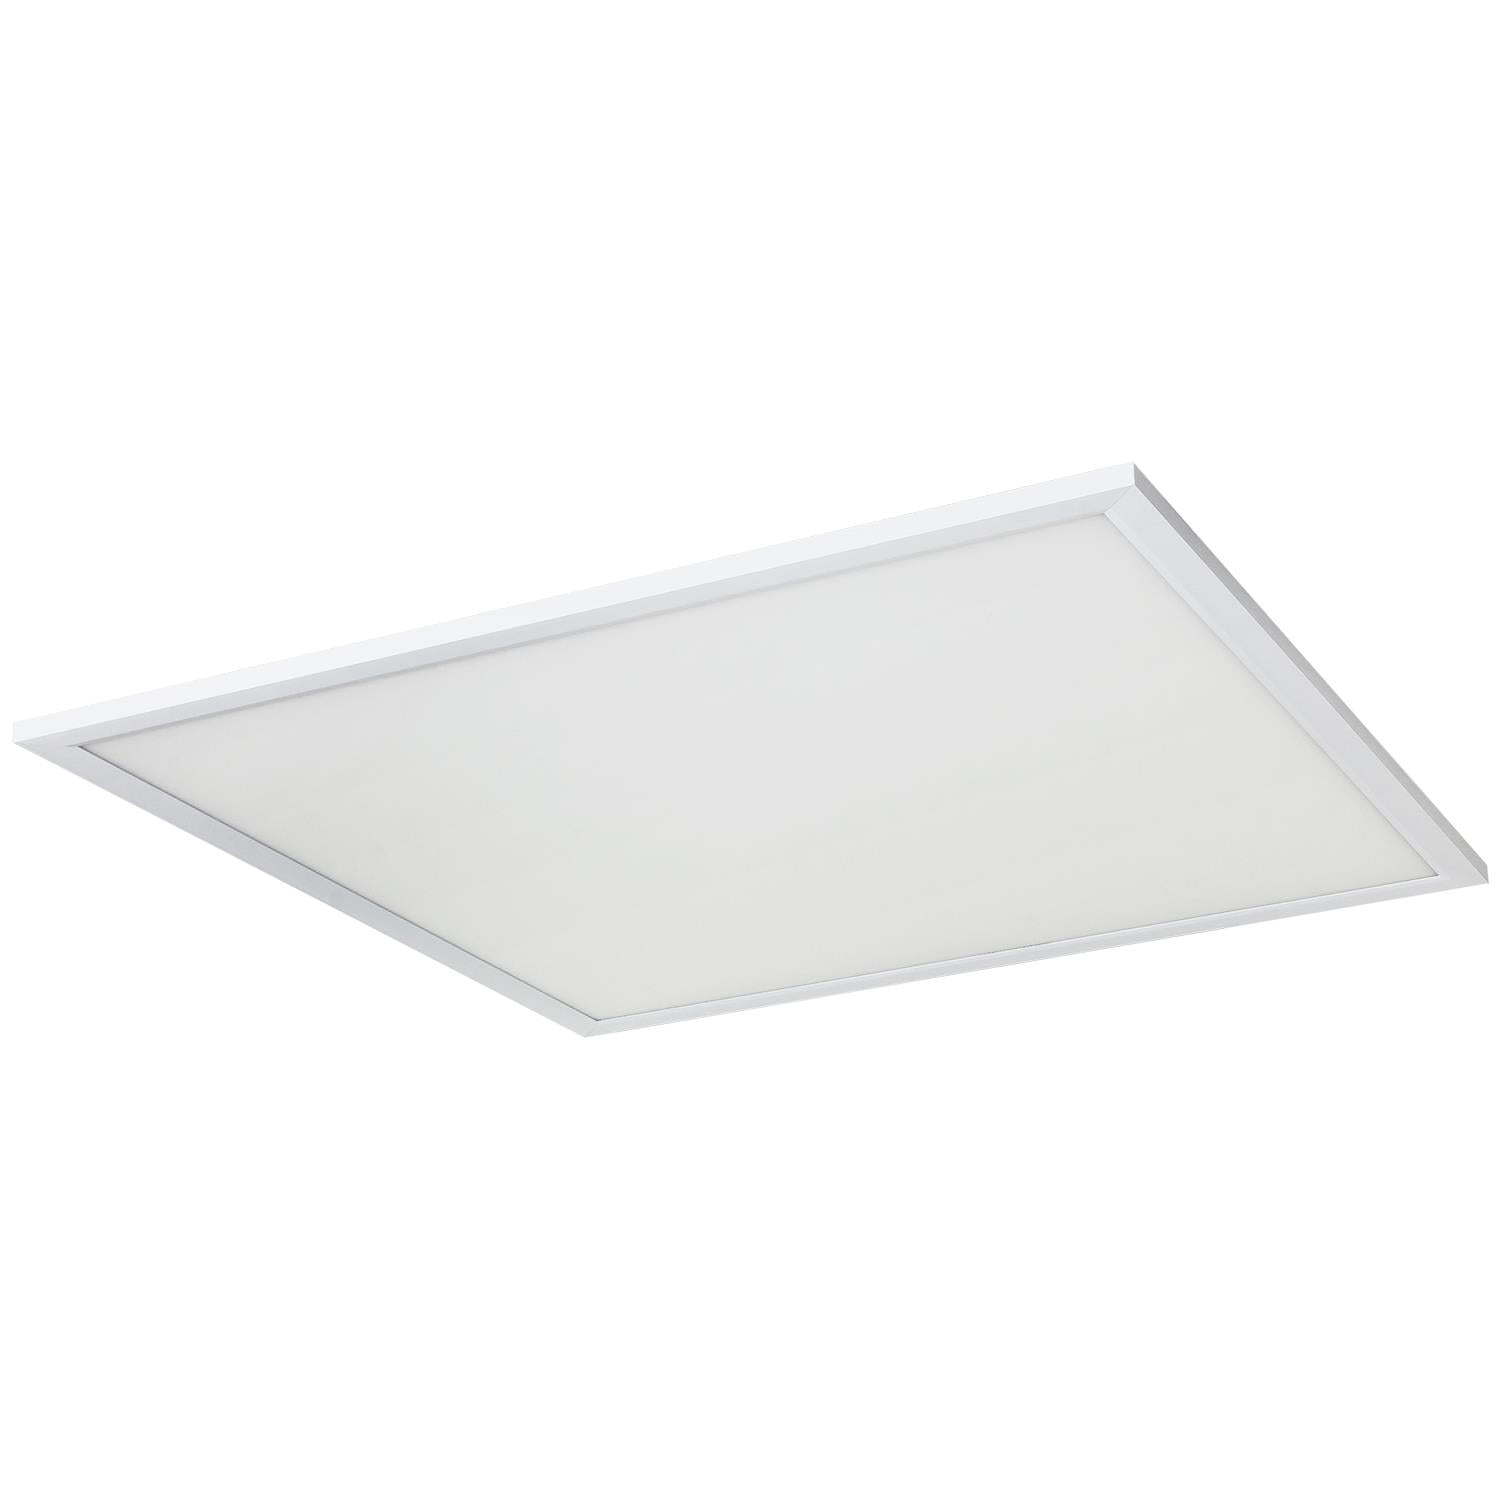 2Pk - SUNLITE 40W 2x2 Integrated LED Flat Panel 6500K Daylight